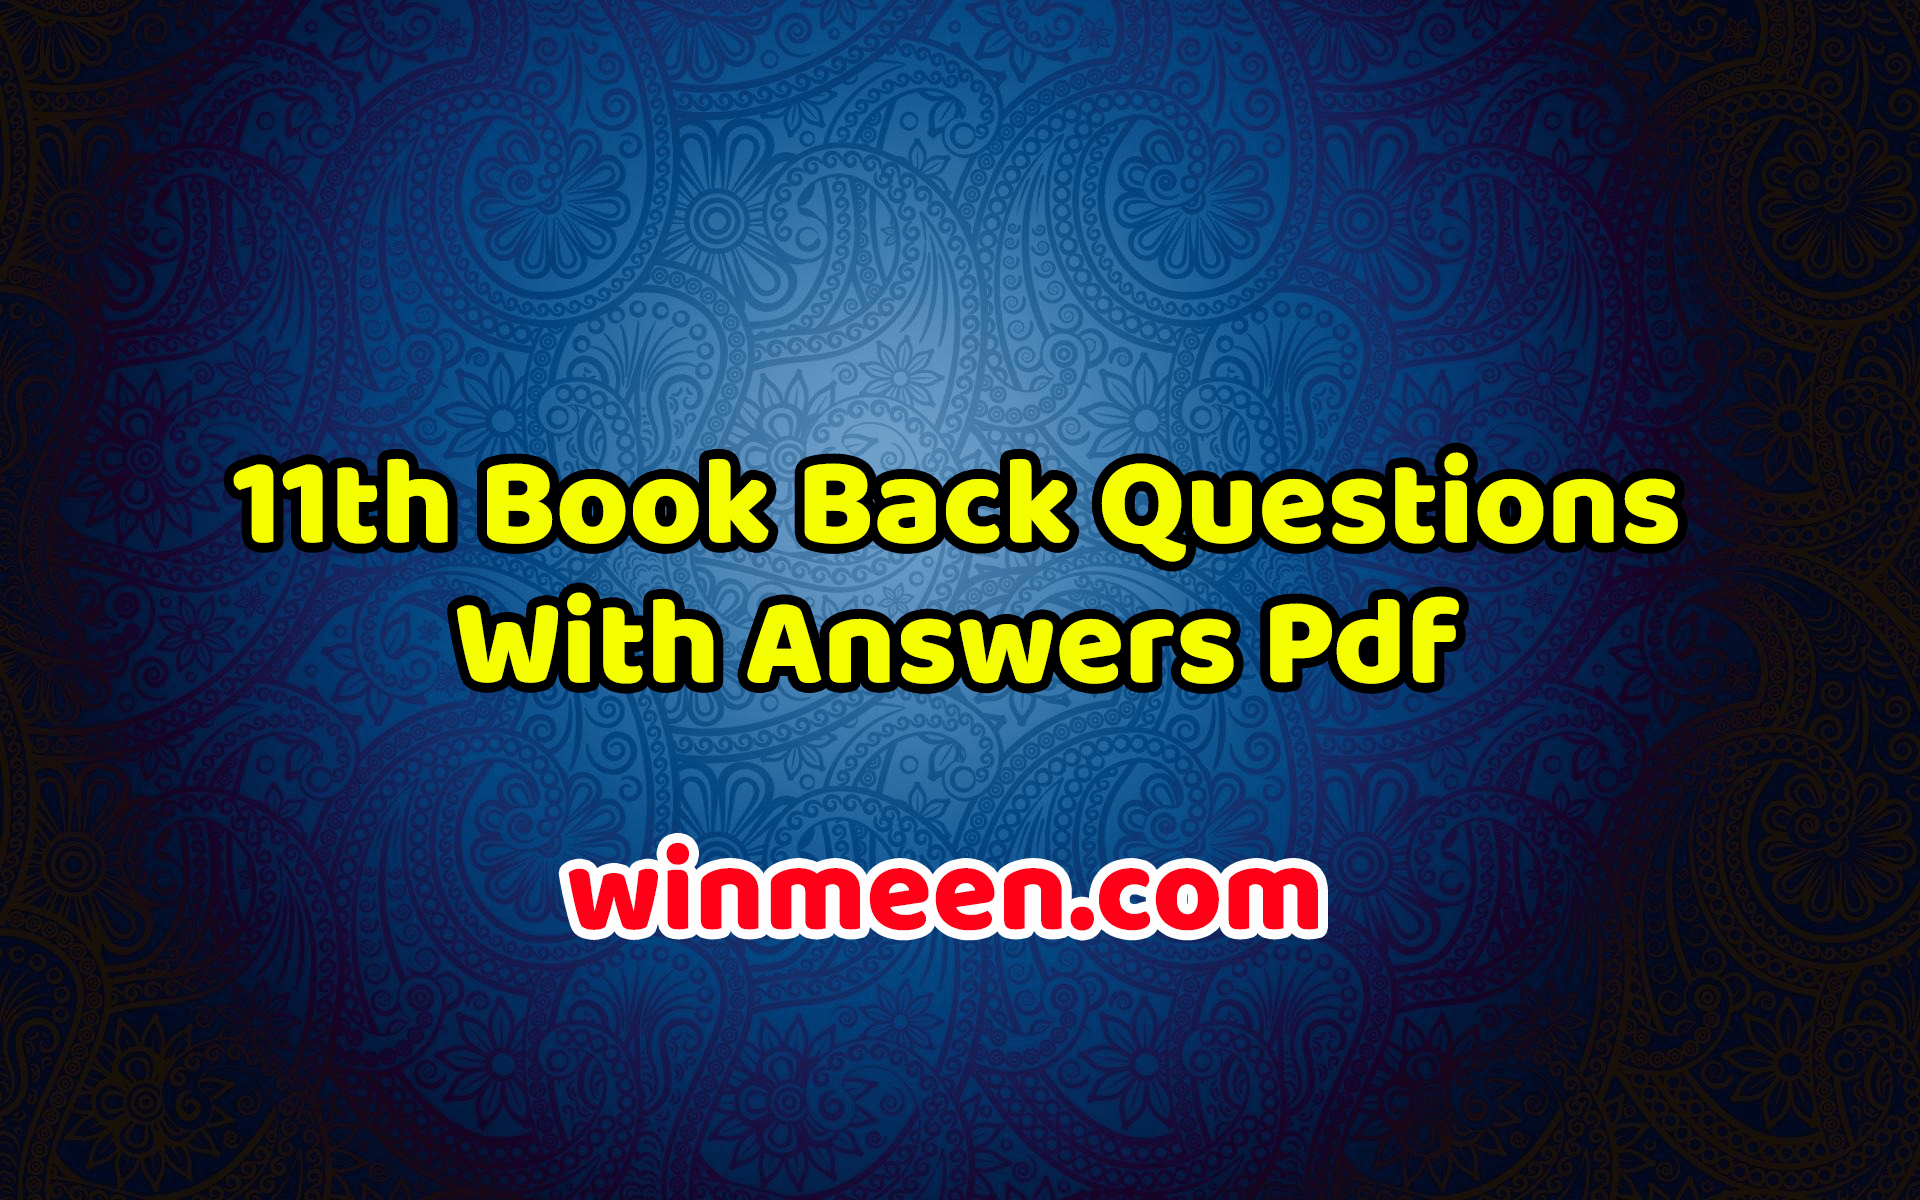 11th Book Back Questions With Answers Pdf - Samacheer Kalvi - WINMEEN